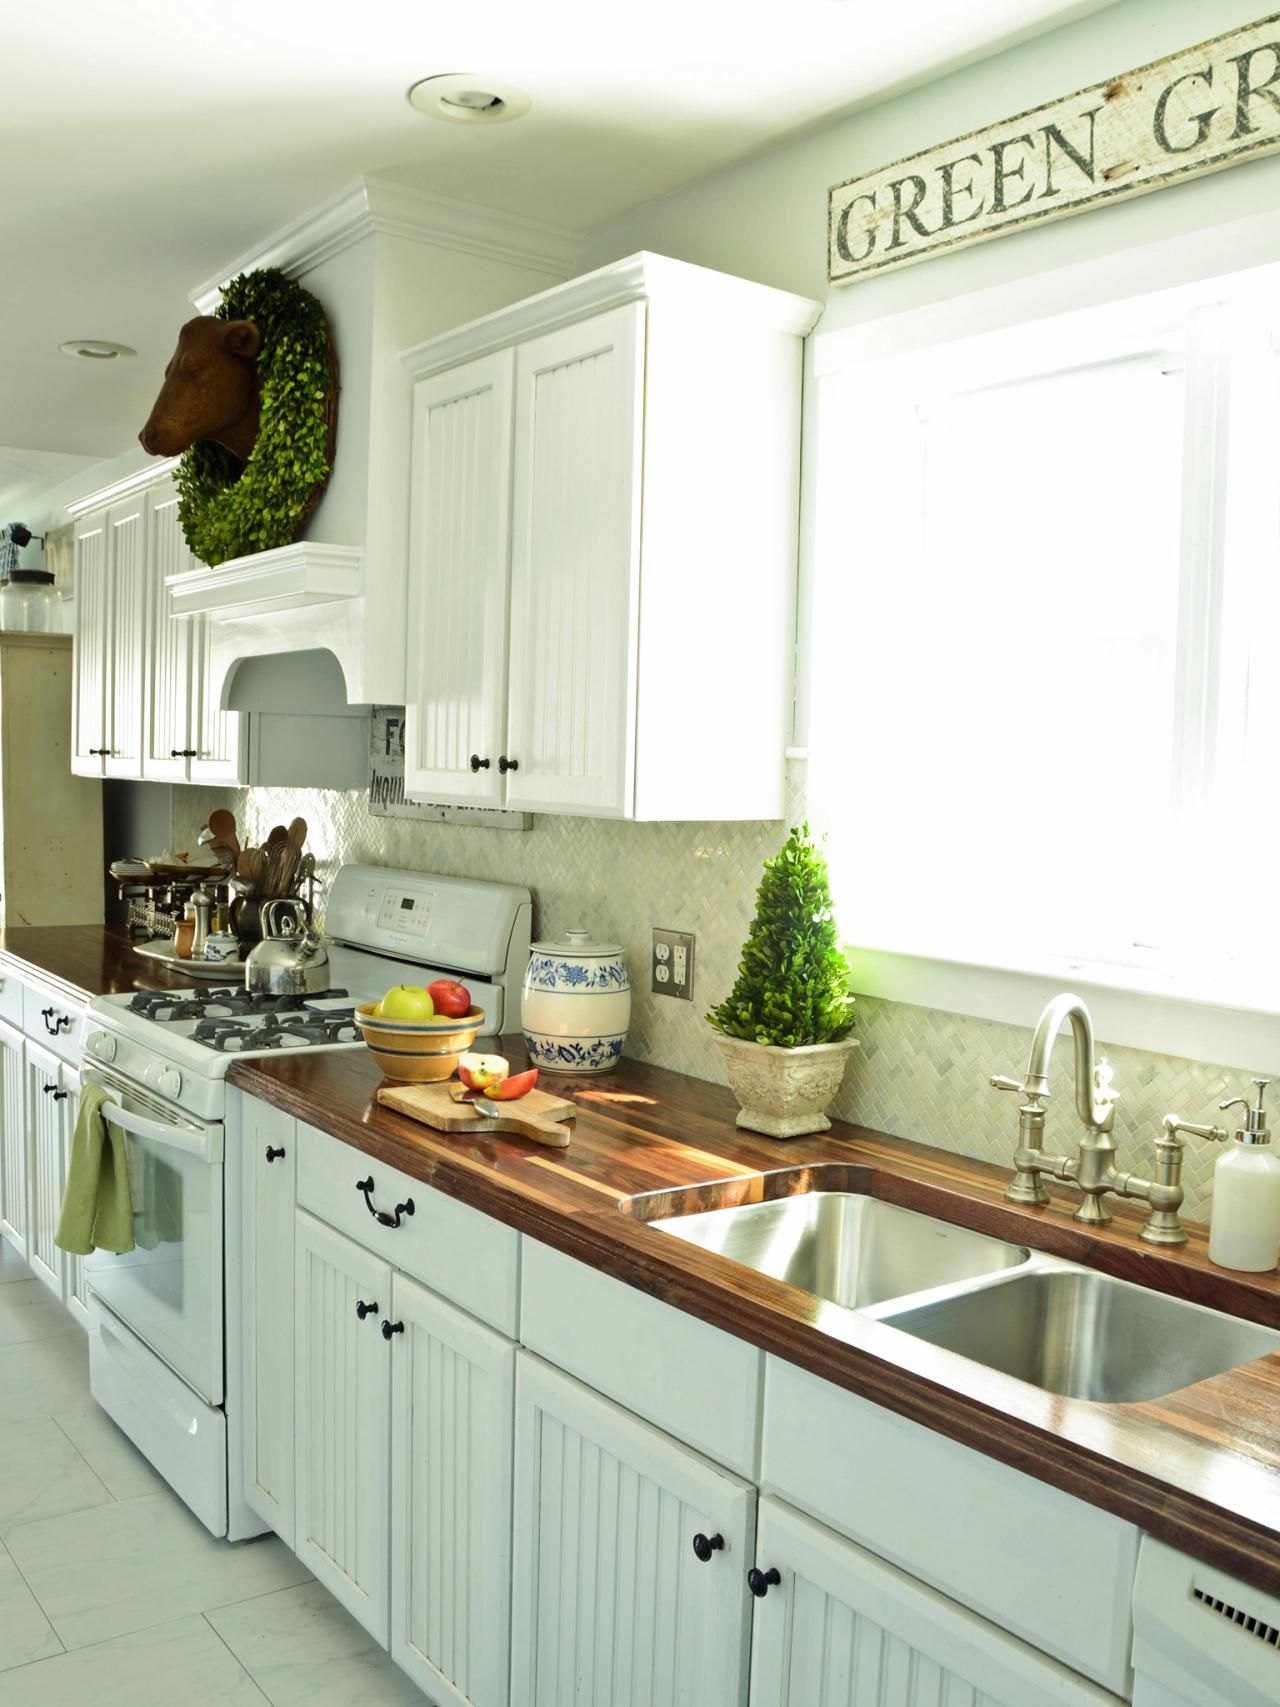 This Country Kitchen Got A Fabulous Upgrade When The Basic